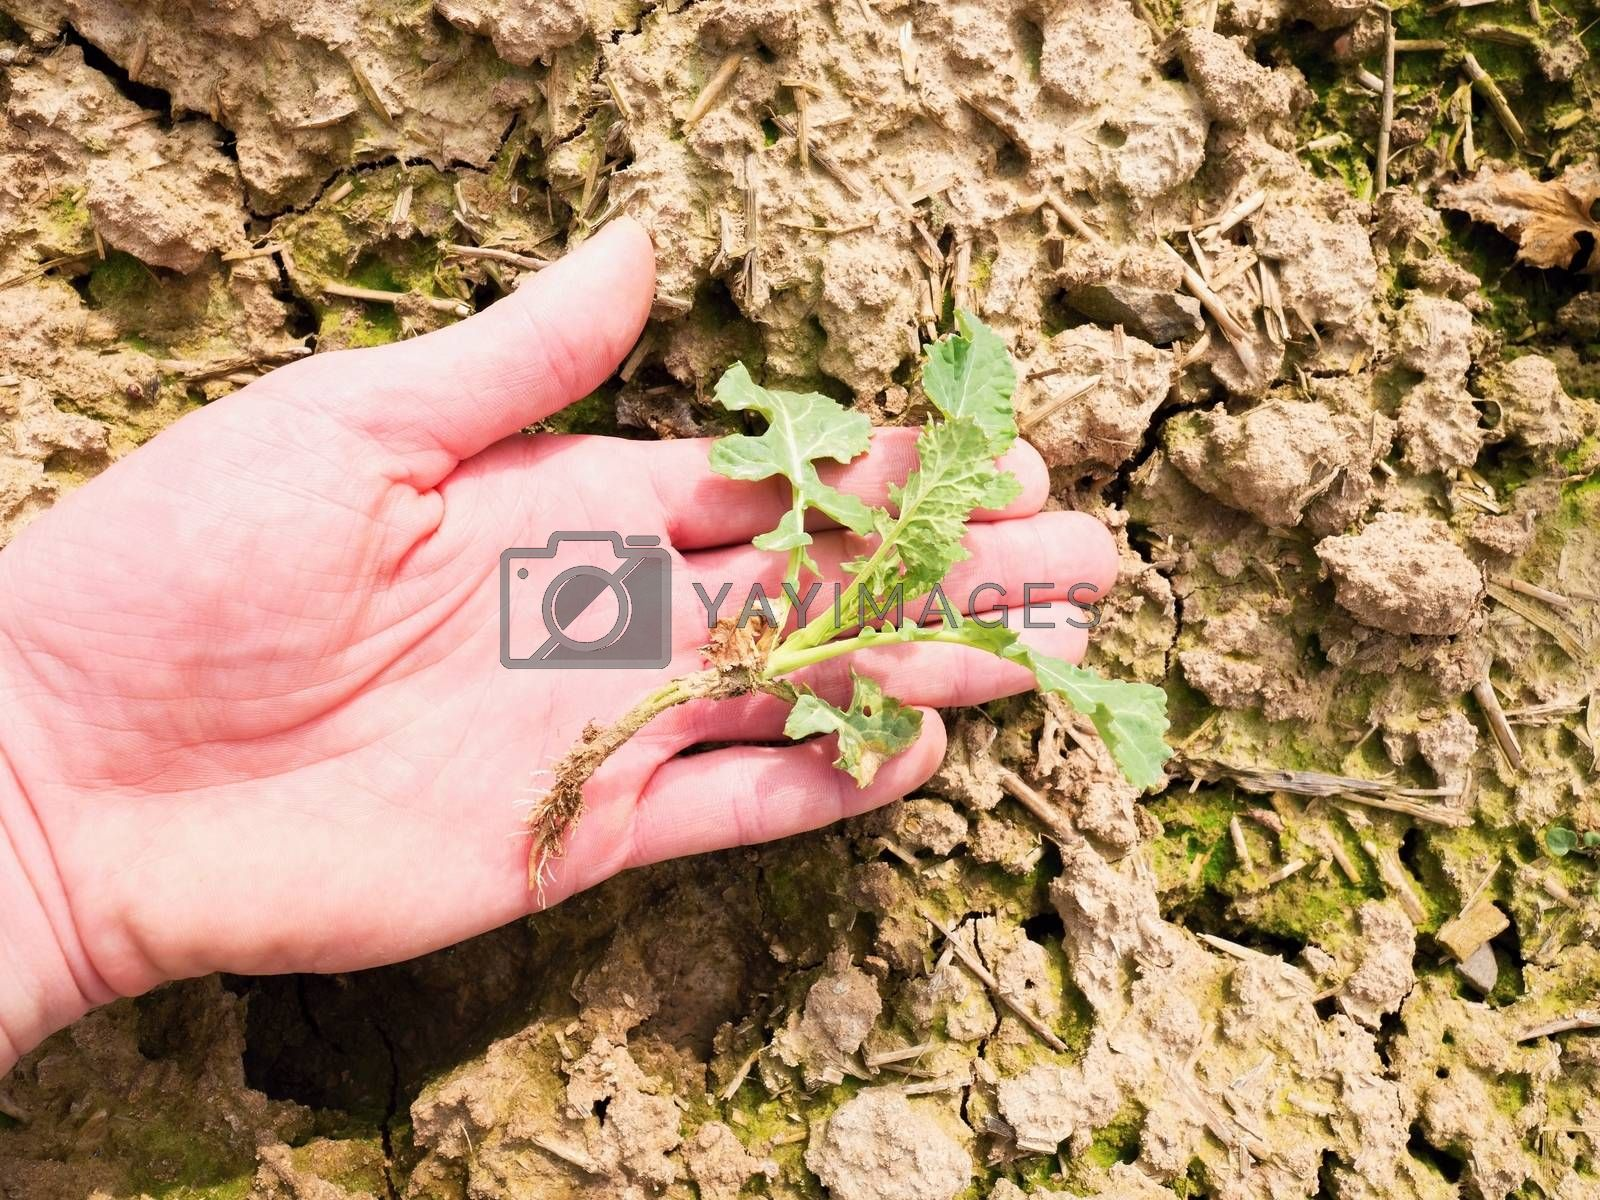 Pink skin hand yanks a small oilseed rape plant from wet humus clay. Man check quality of oilseed rape and roots. Hand touching stalk, leaves and roots.